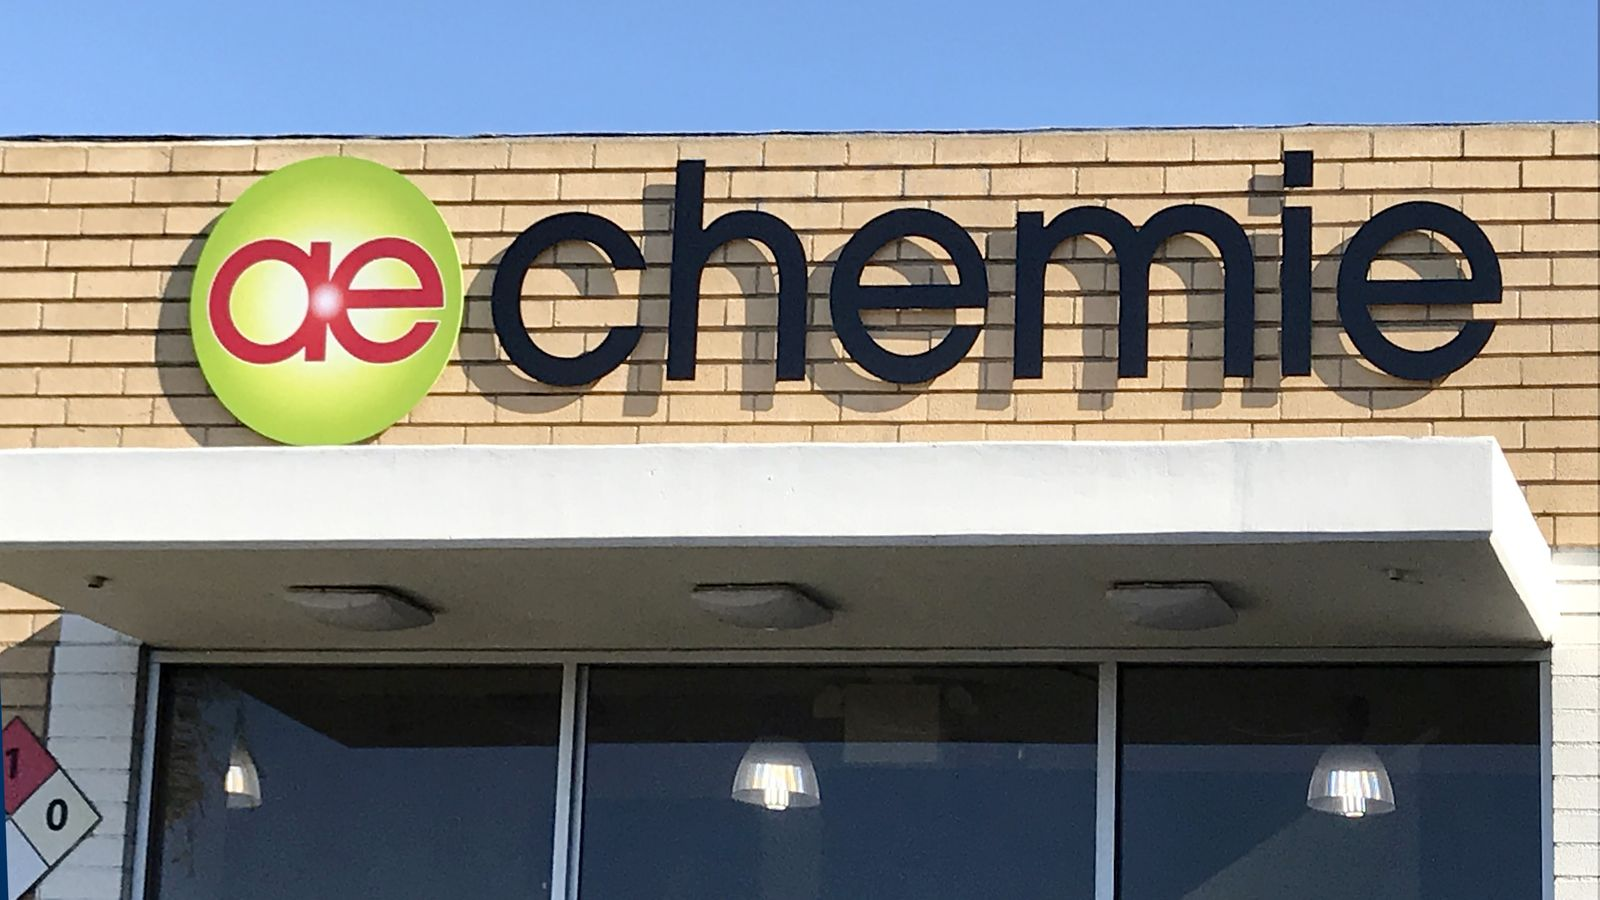 Chemie 3d metal logo sign in green and red colors and letters in black made of aluminum for storefront branding